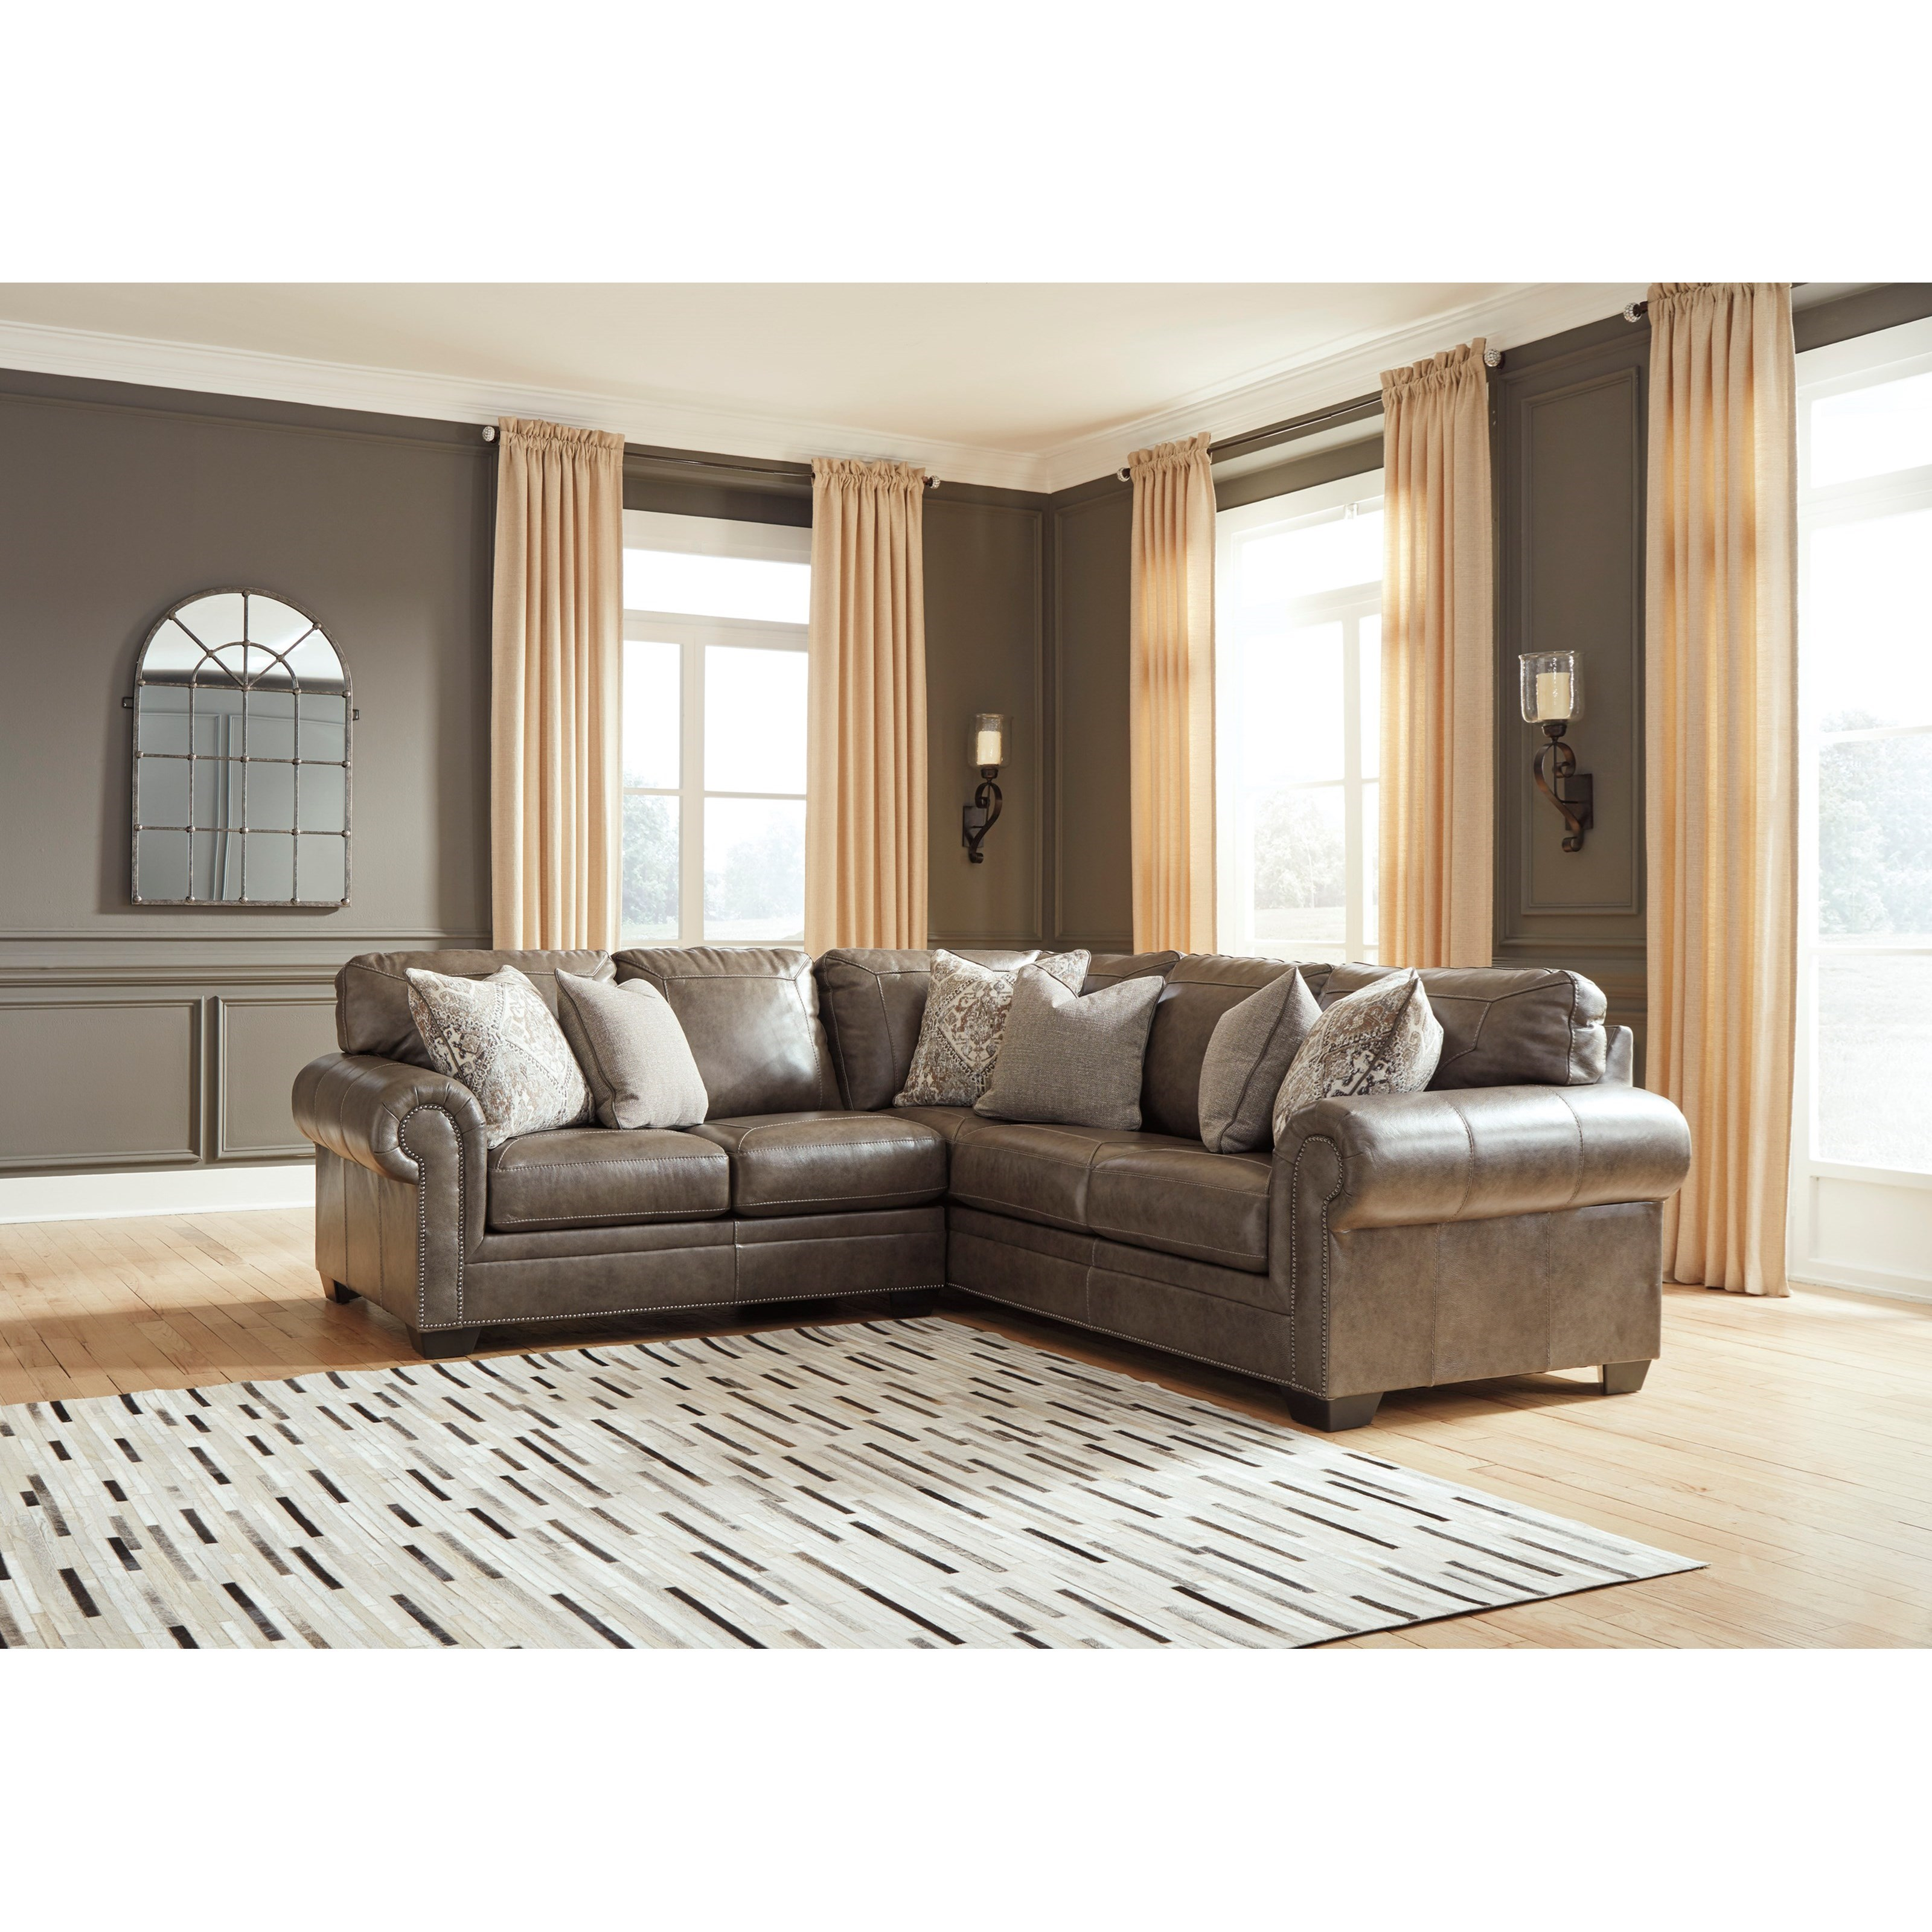 Signature Home Furnishings: Signature Design By Ashley Roleson Transitional Two Piece